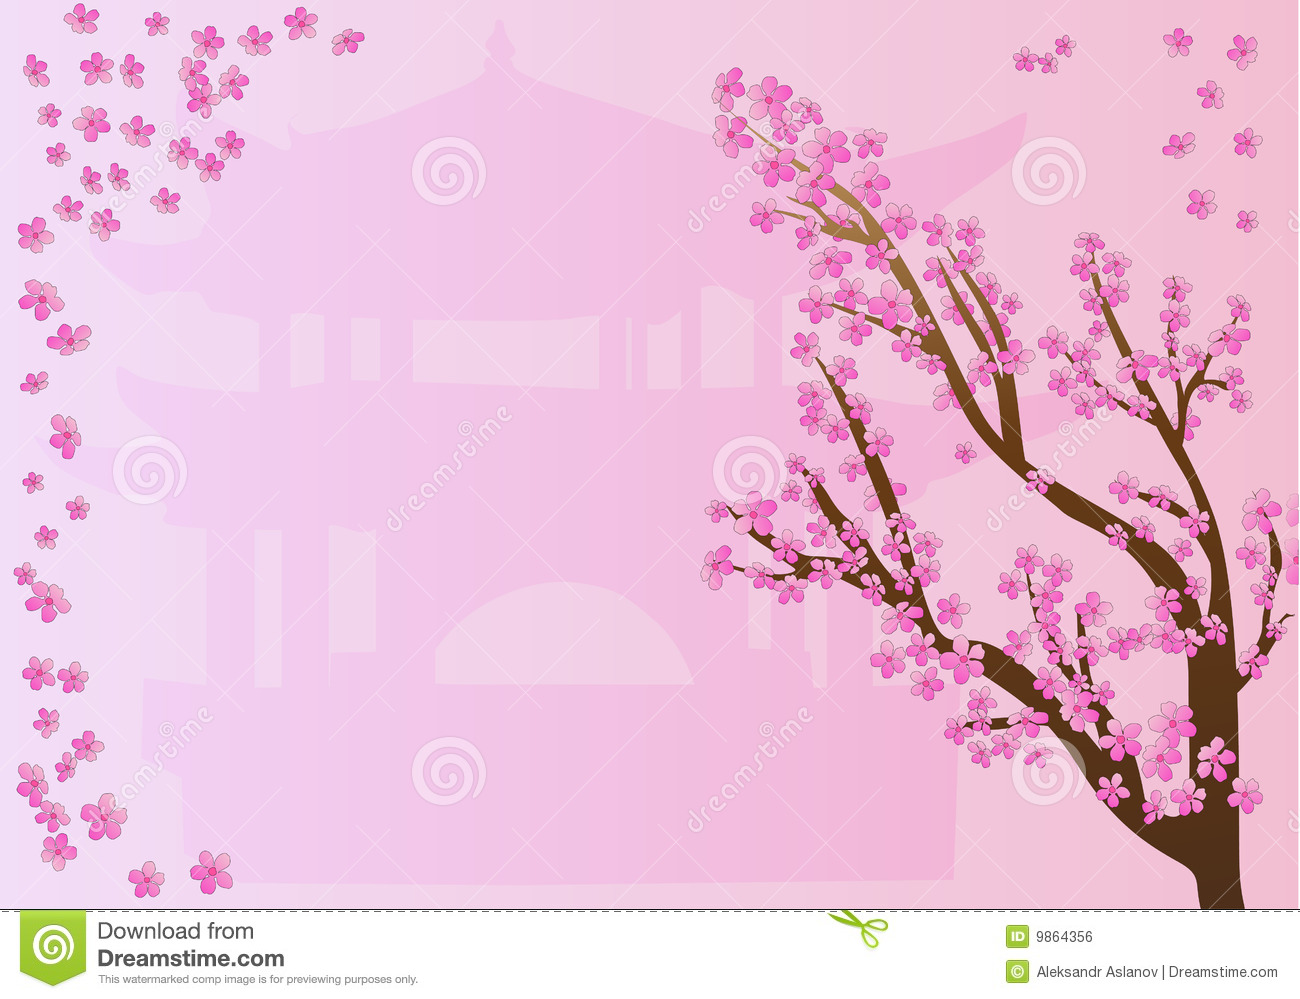 Cherry Blossoms On Pink Design Stock Illustration - Image: 9864356